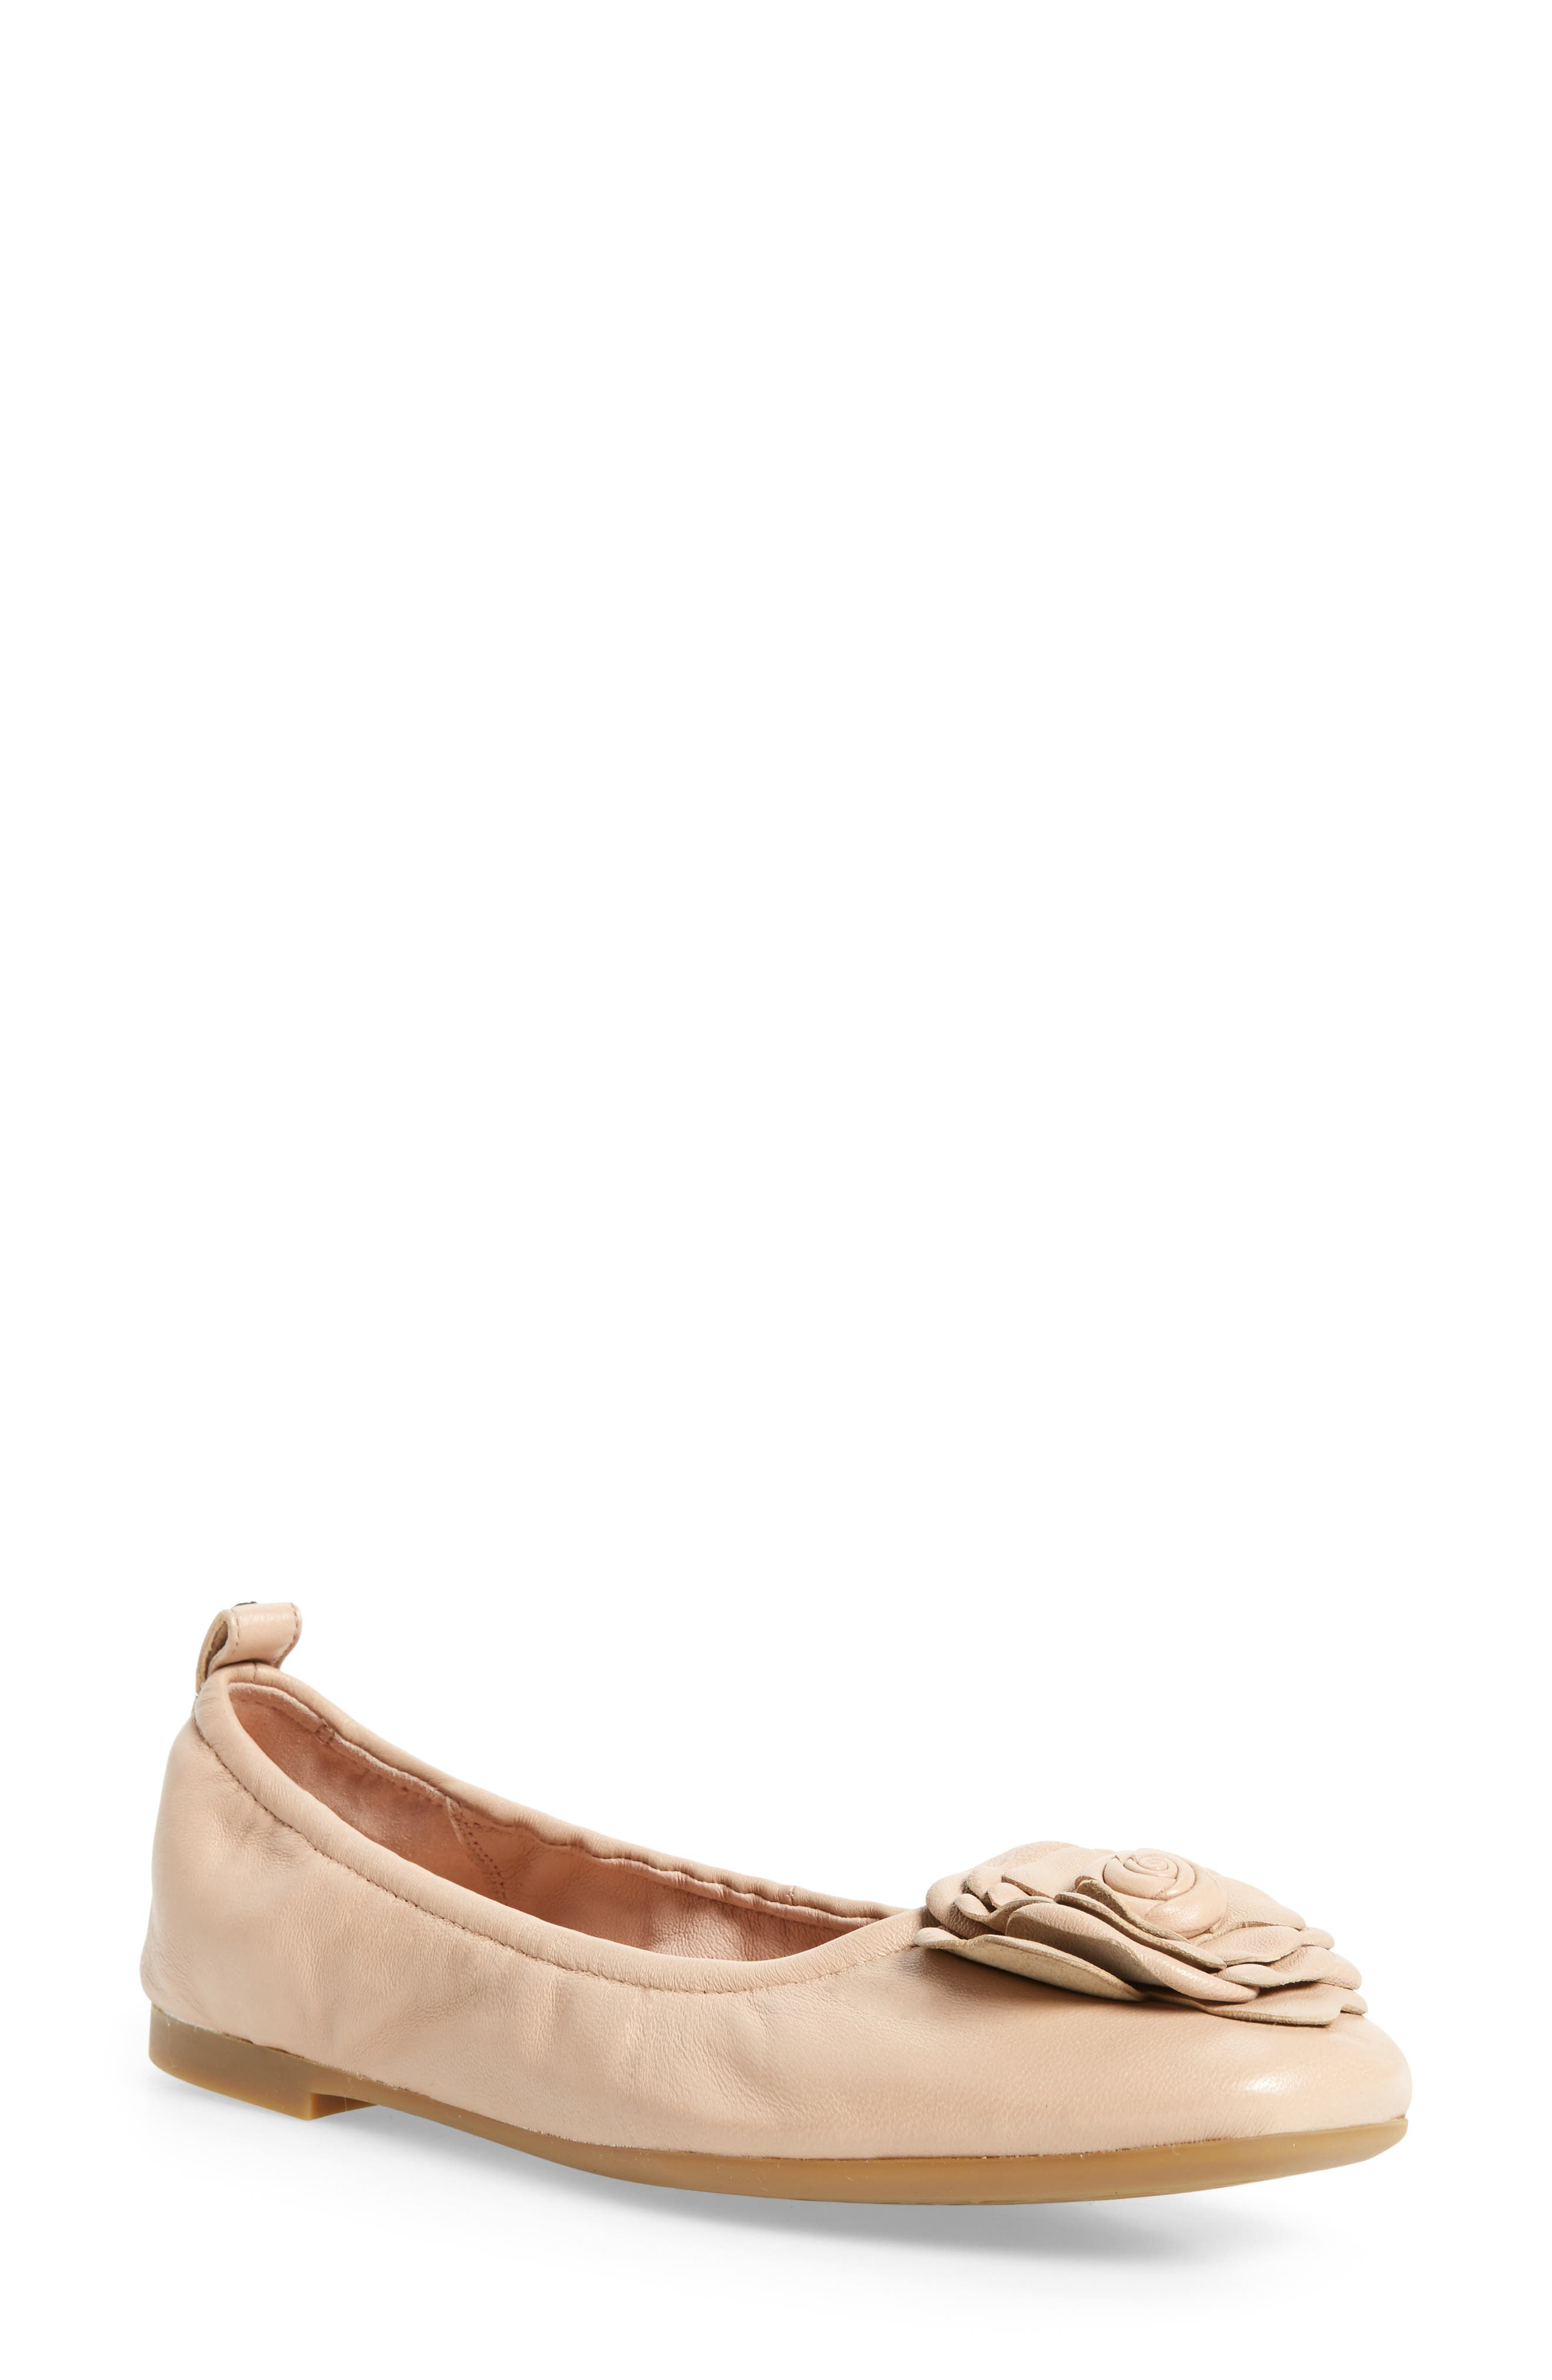 Rosalyn Ballet Flat,                             Main thumbnail 1, color,                             Nude Leather